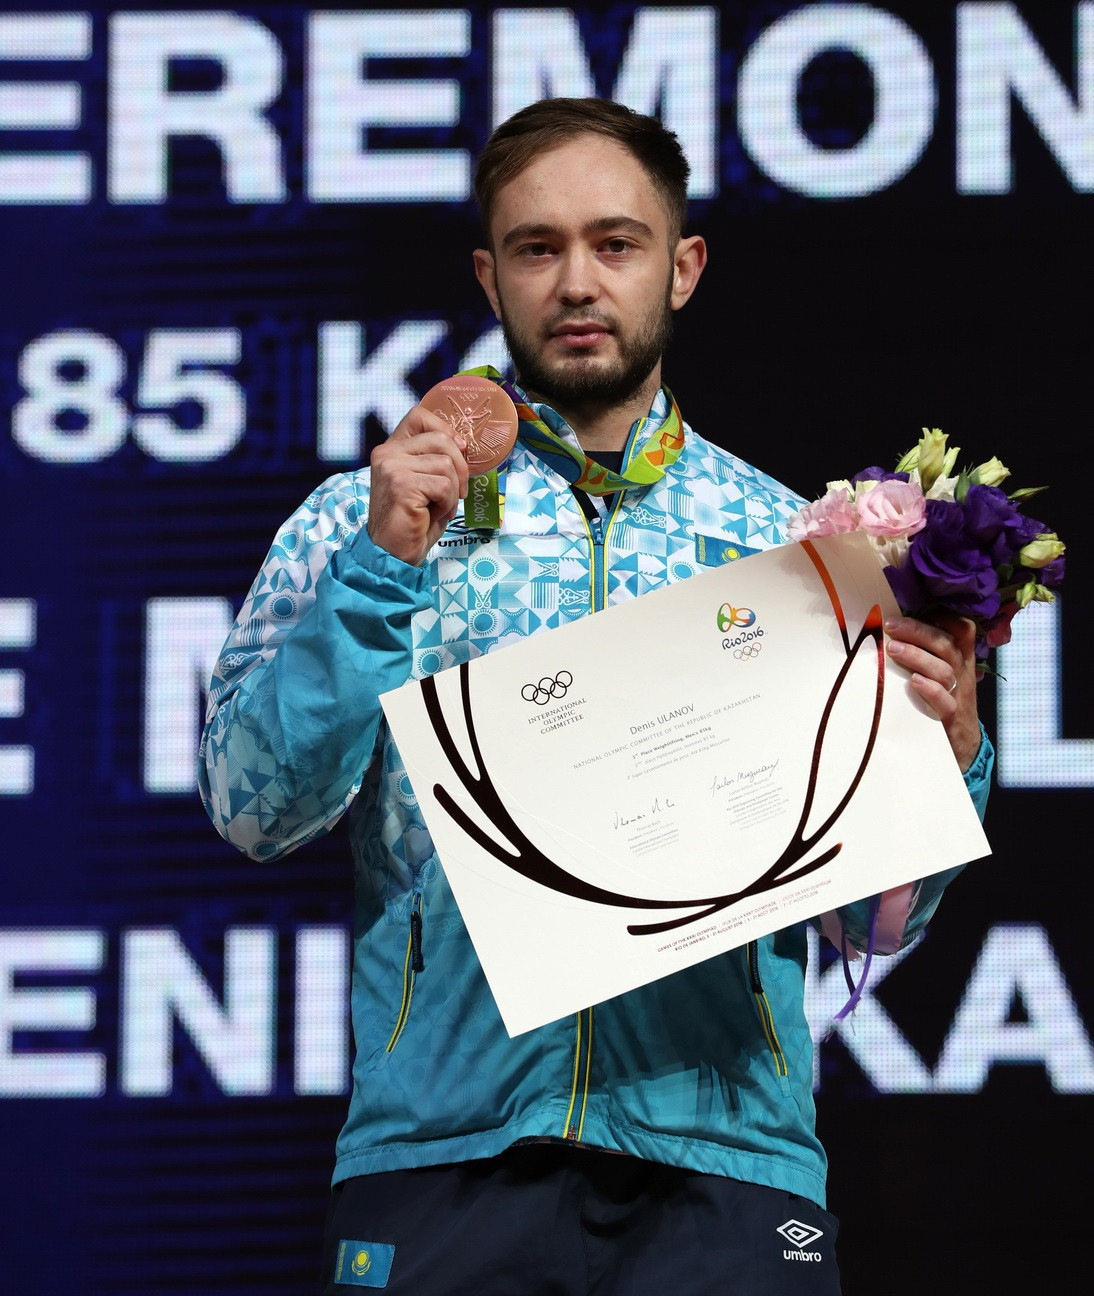 Kazakhstan's Denis Ulanov was promoted to the bronze medal in the men's 85kg category from the Rio 2016 Olympics ©IWF